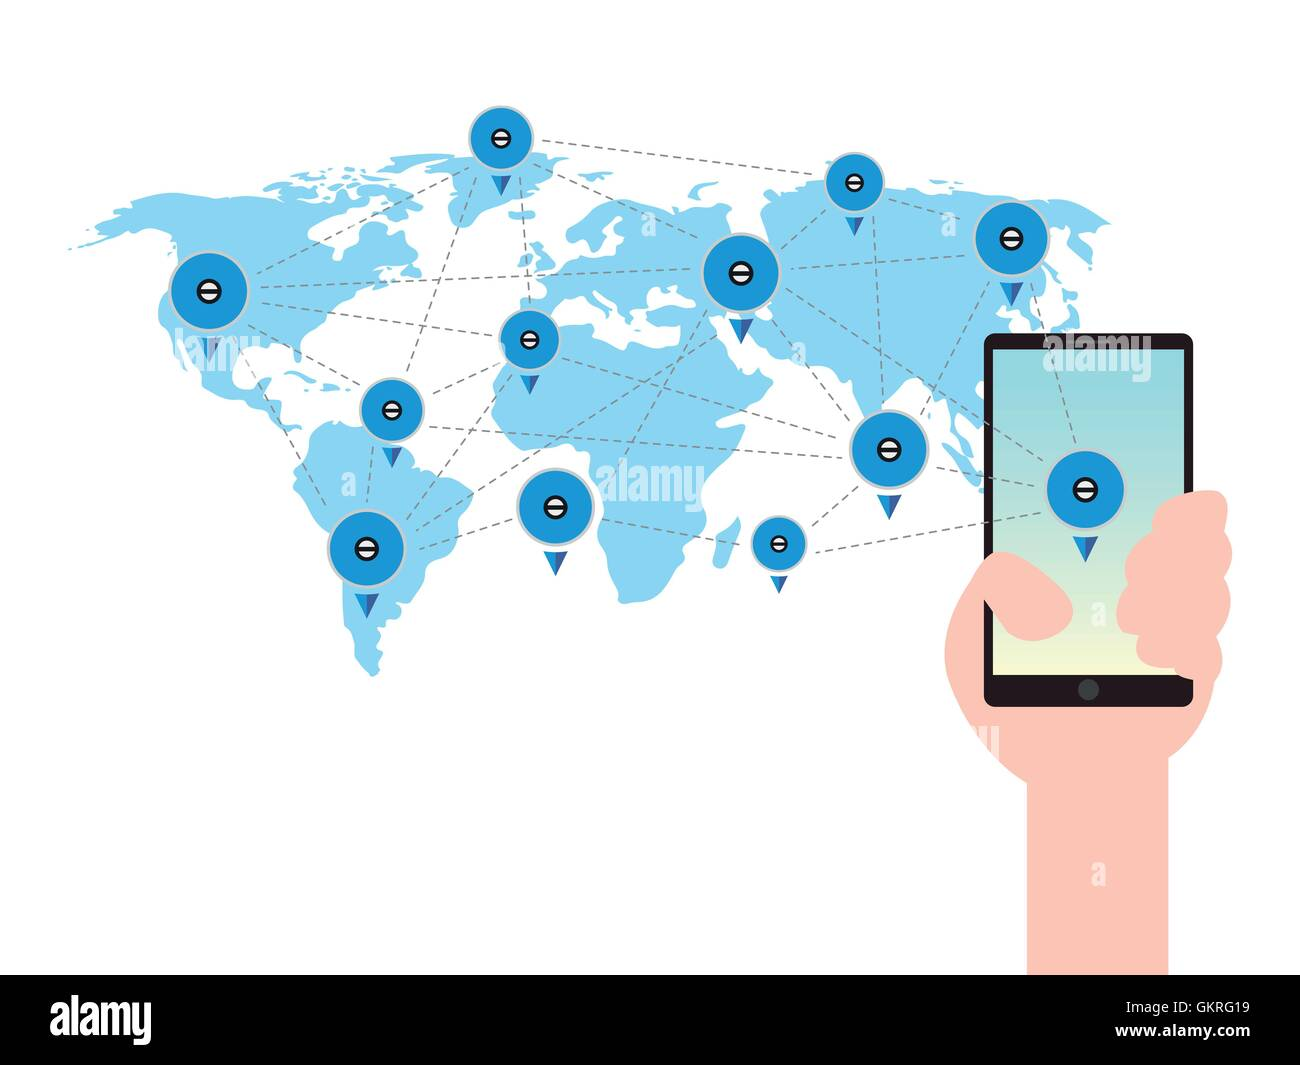 Mobile phone in a hand world map global business communication stock mobile phone in a hand world map global business communication technology concept gumiabroncs